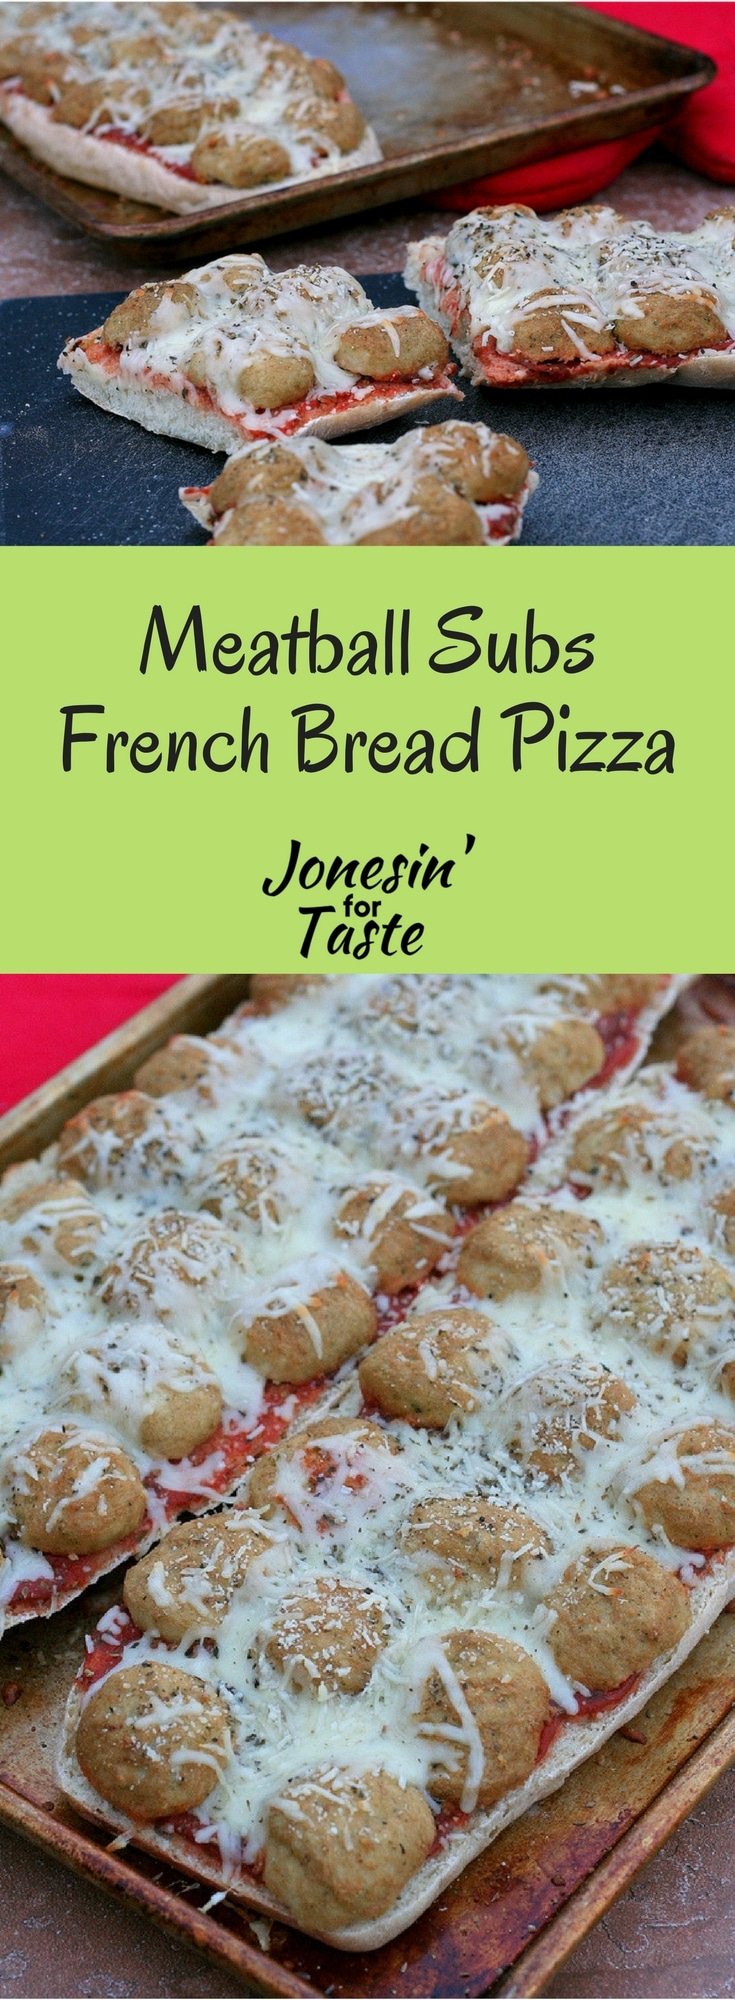 Turn the classic meatball sub into a Meatball Sub French Bread Pizza for a quick 30 minute dinner to feed a crowd that is sure to please the kids.